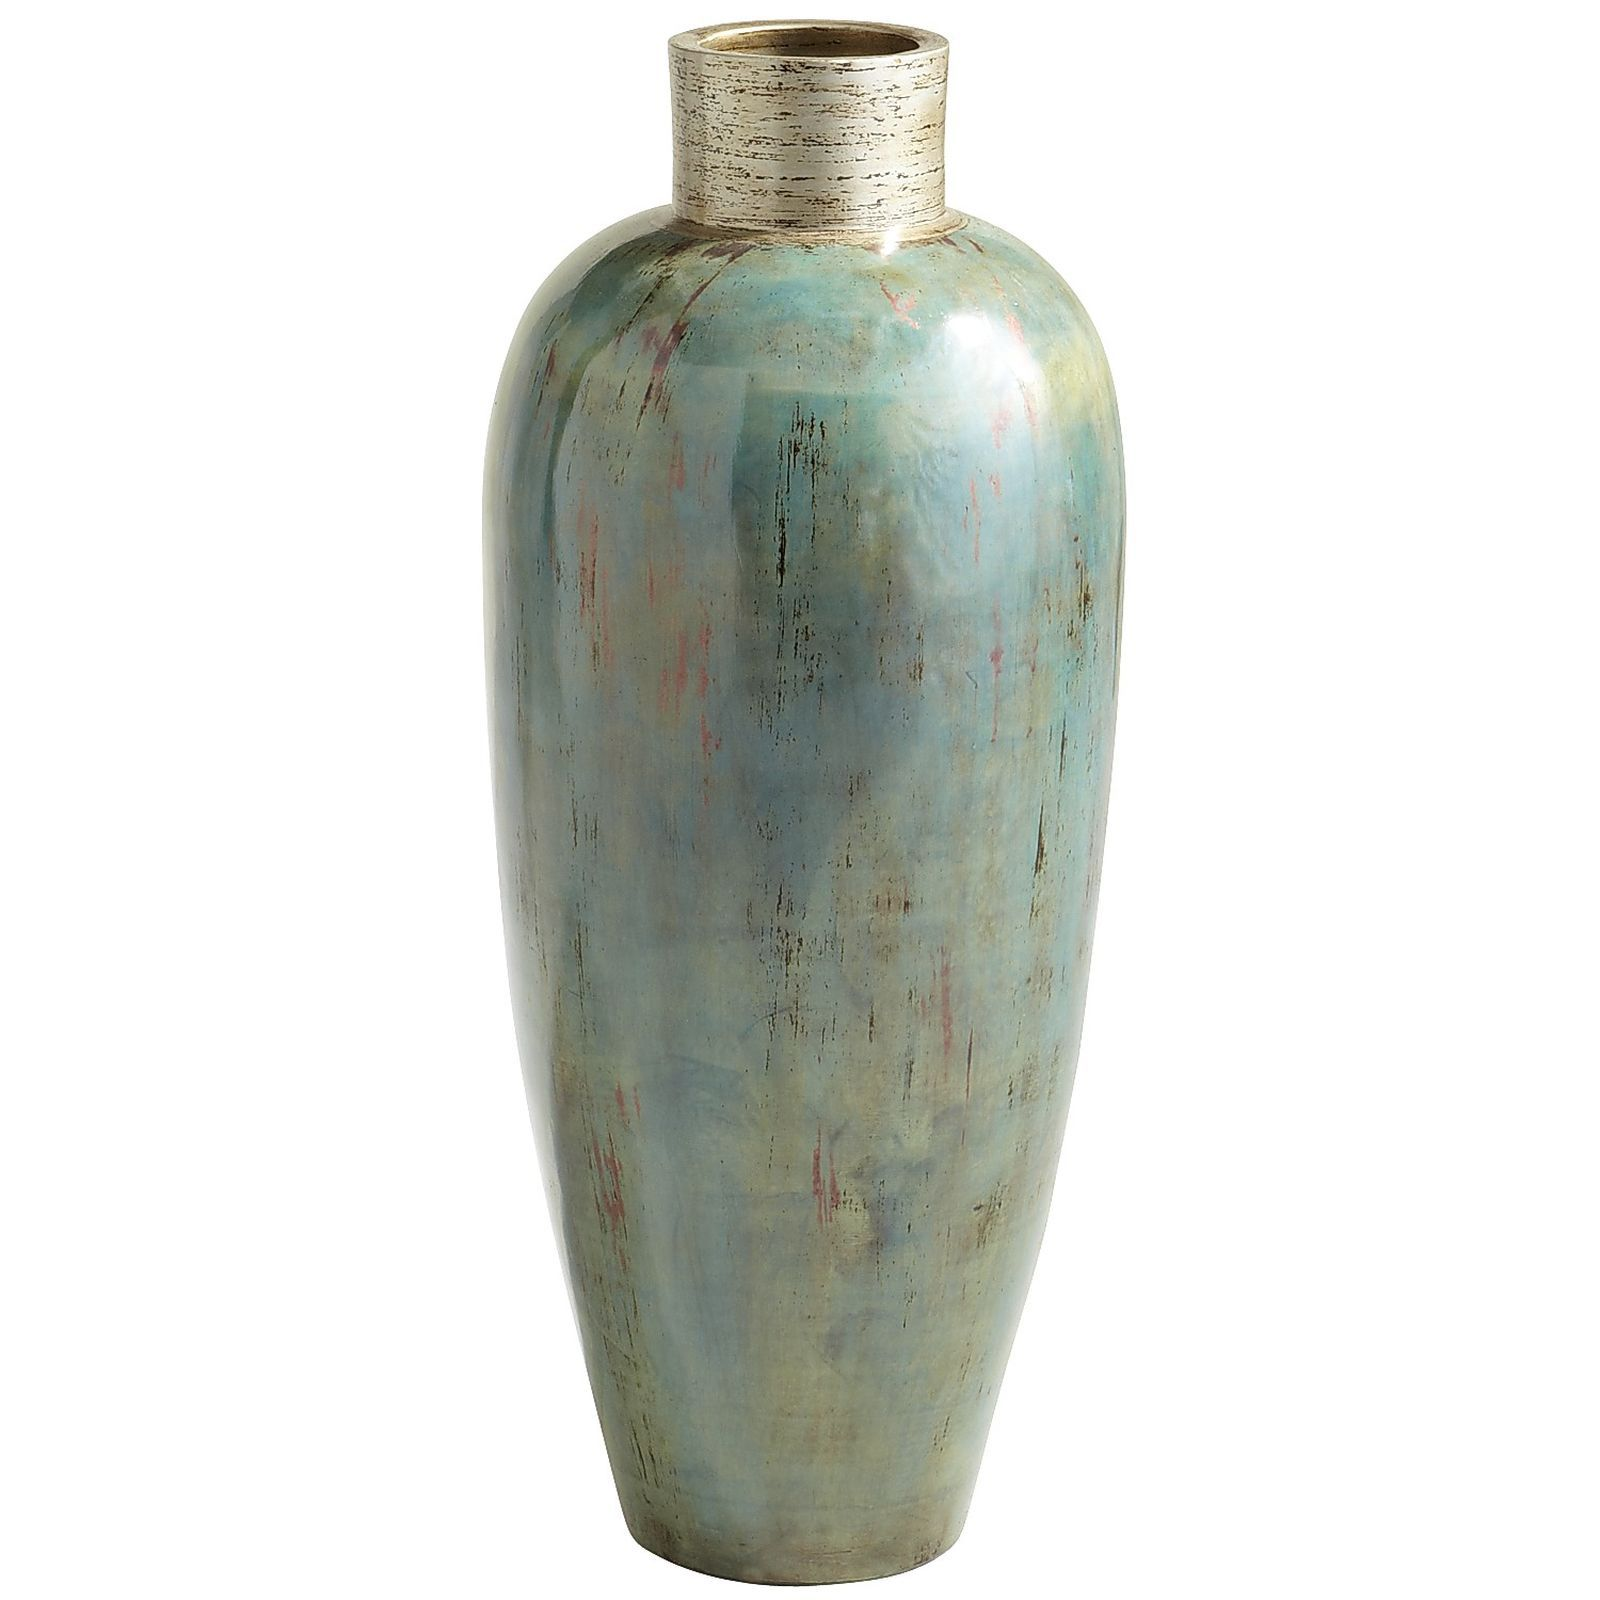 Ocean blue patina terracotta floor vase terracotta floor theres something soothing and unique about this terracotta floor vase finished with an ocean blue reviewsmspy